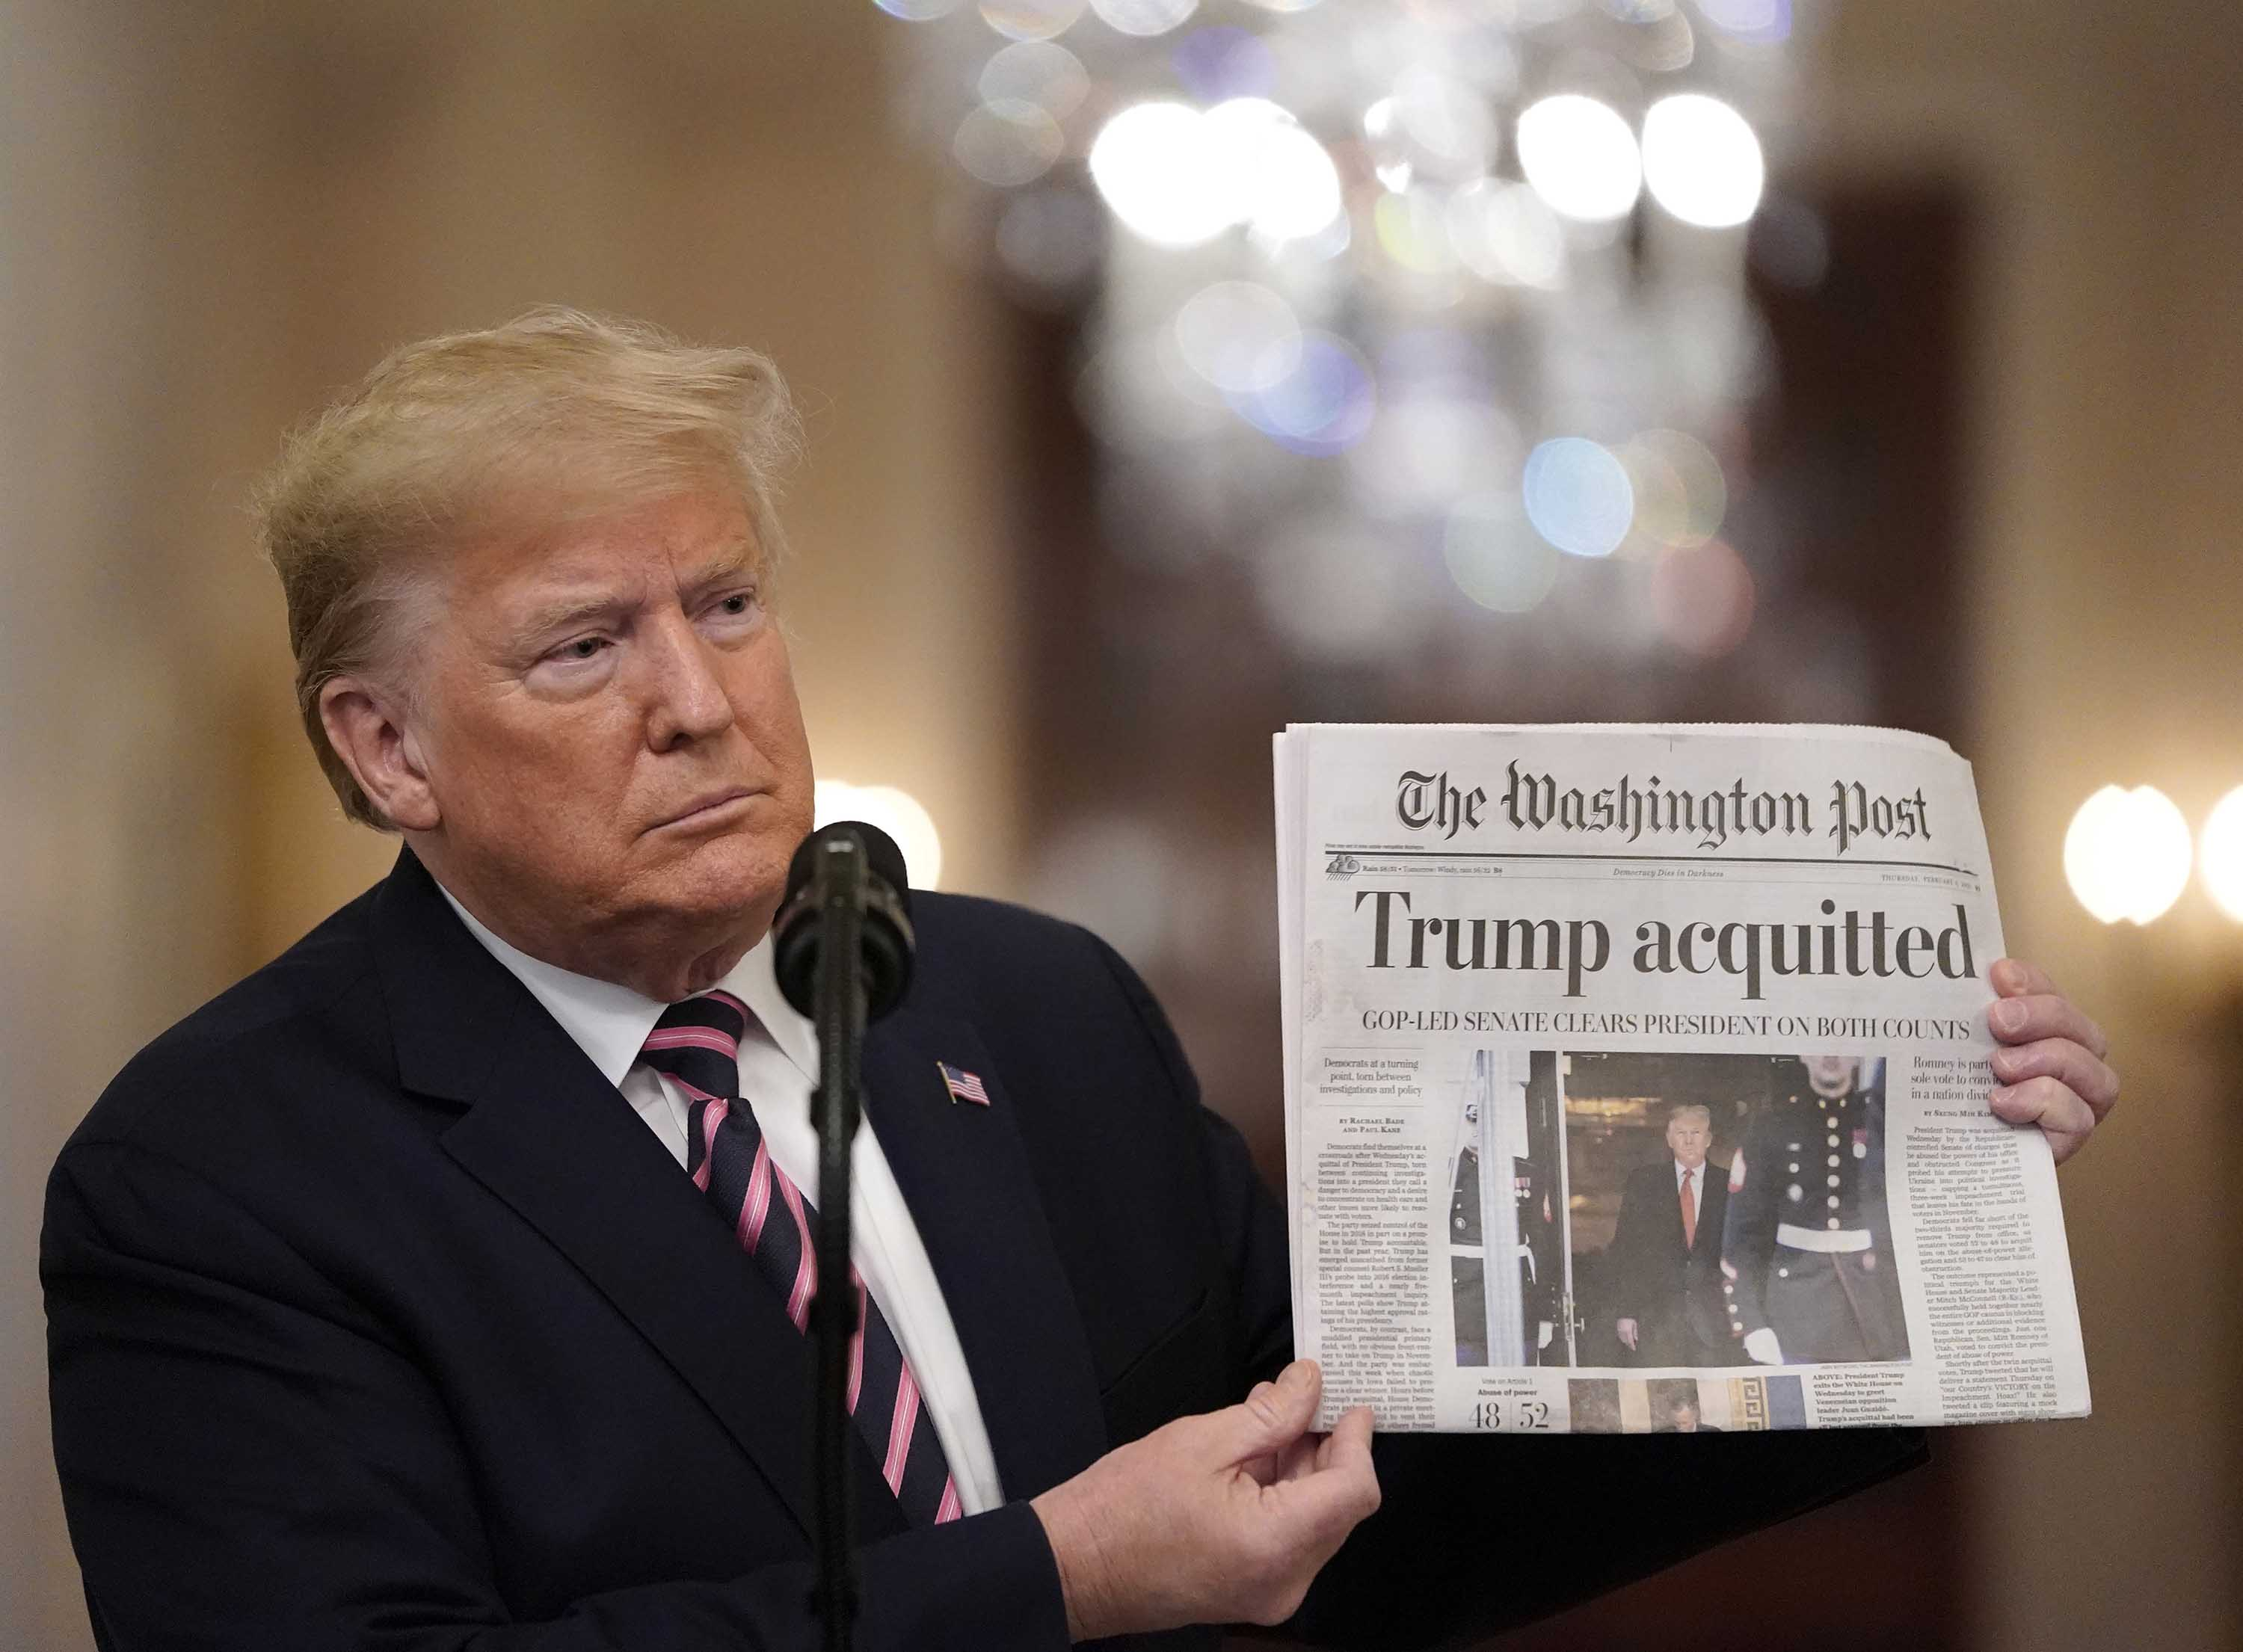 President Donald Trump holds a copy of The Washington Post as he speaks in the White House, one day after the U.S. Senate acquitted on two articles of impeachment, on February 6, 2020.